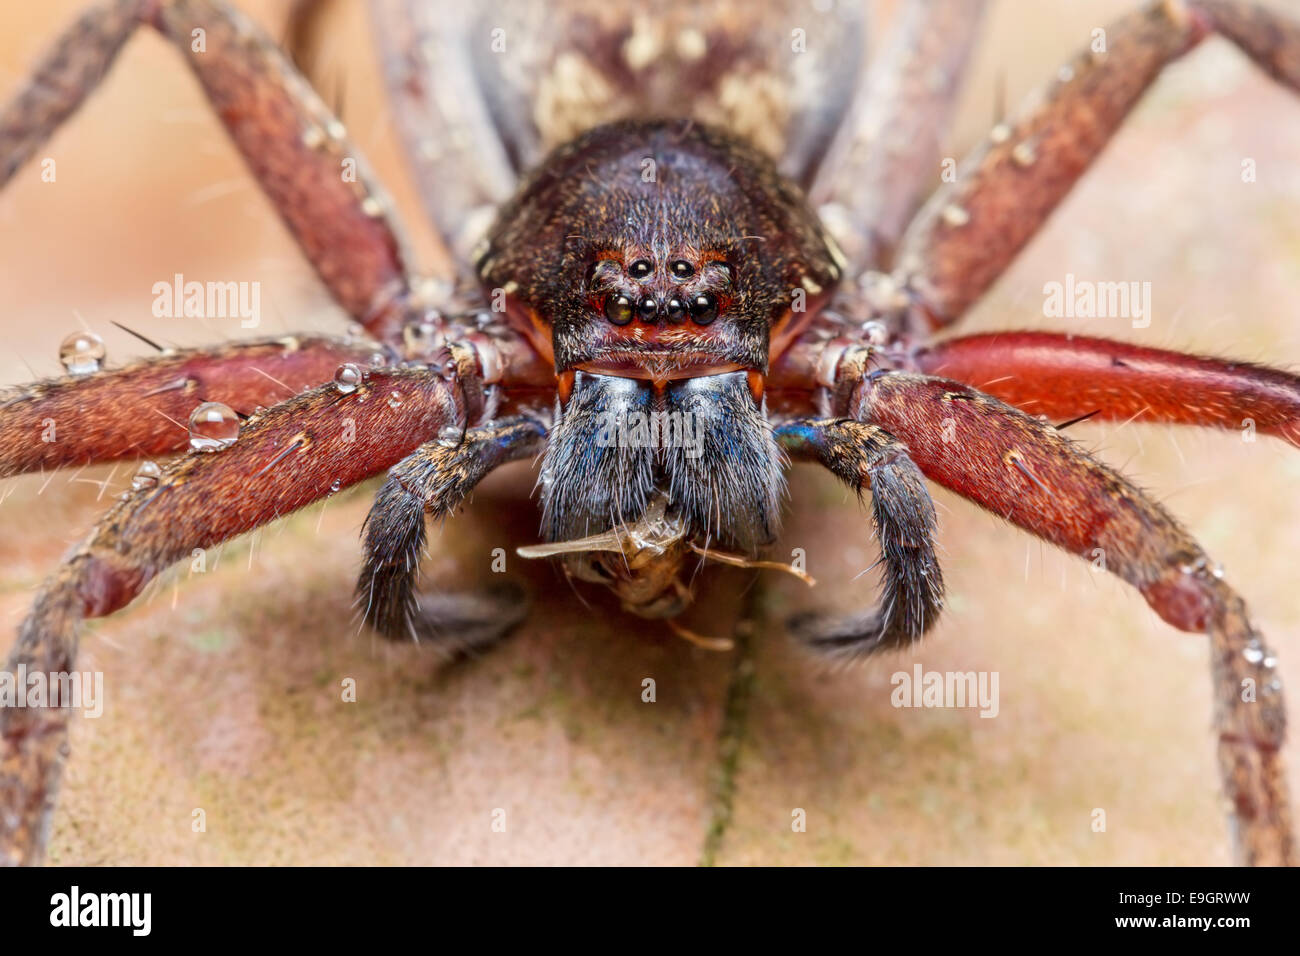 Huntsman spider (Heteropoda sp.) feeding on a bug in tropical rainforest of Malaysia - Stock Image